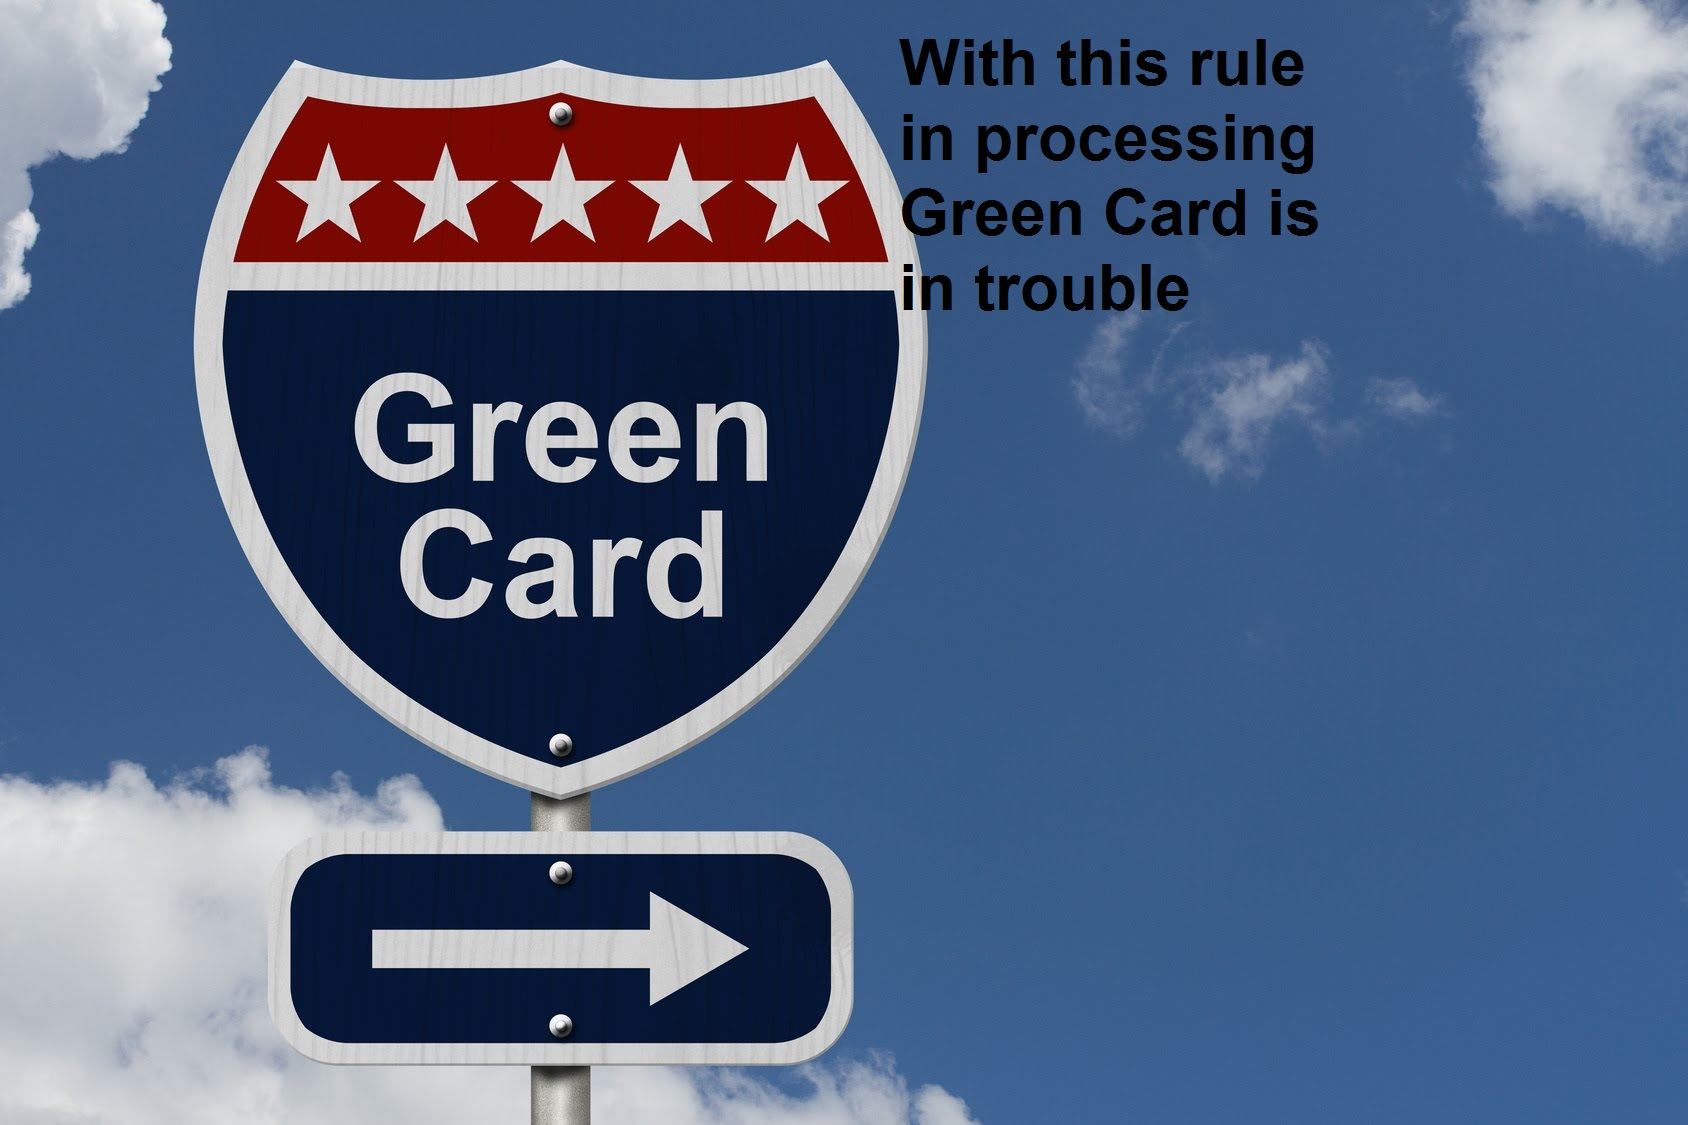 With this rule in processing Green Card is in trouble